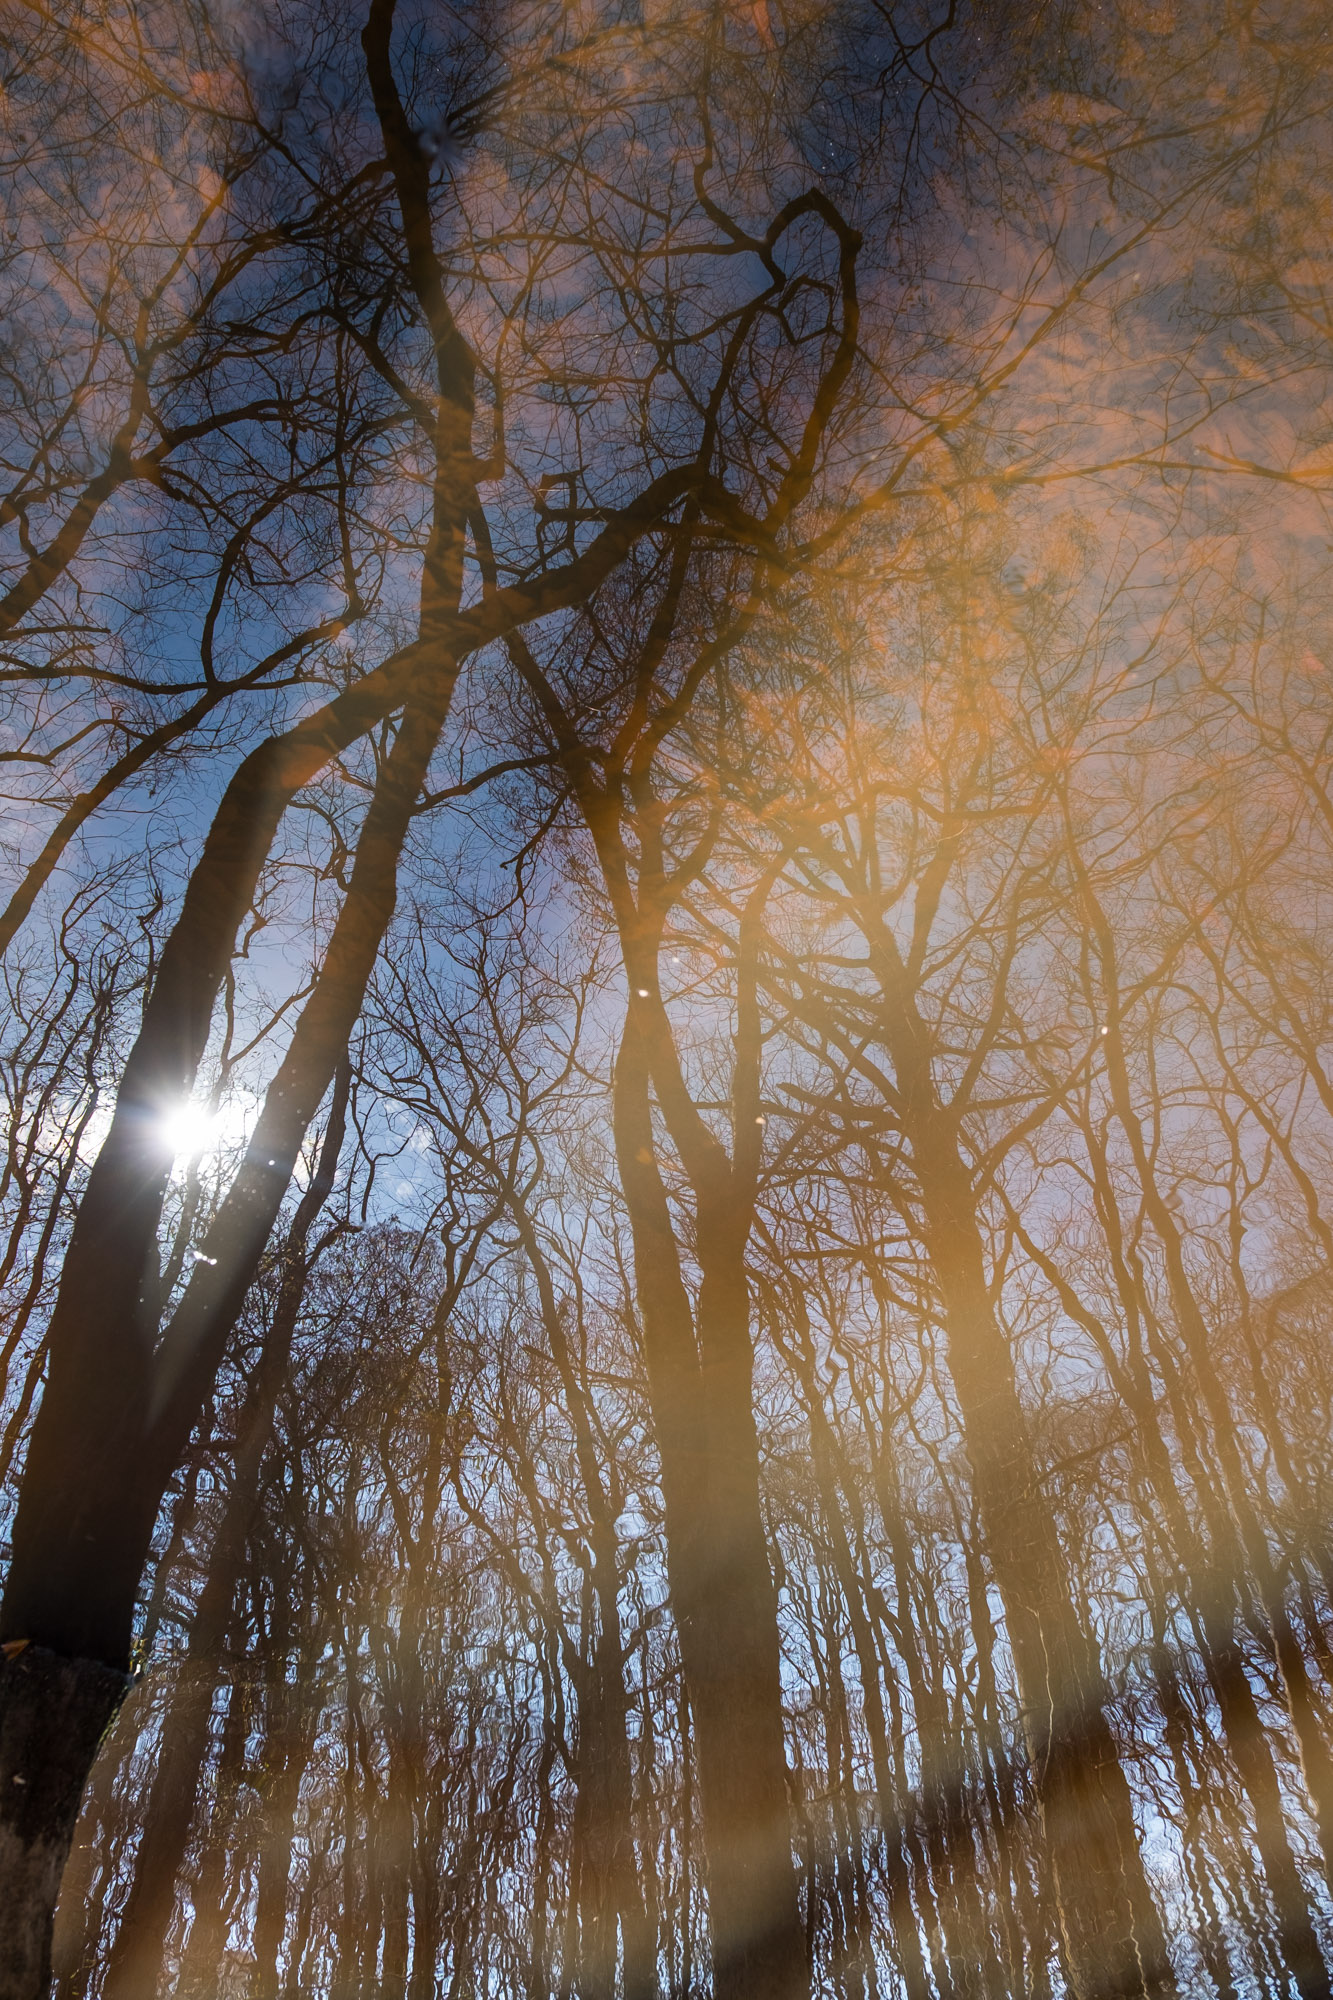 Reflected trees.